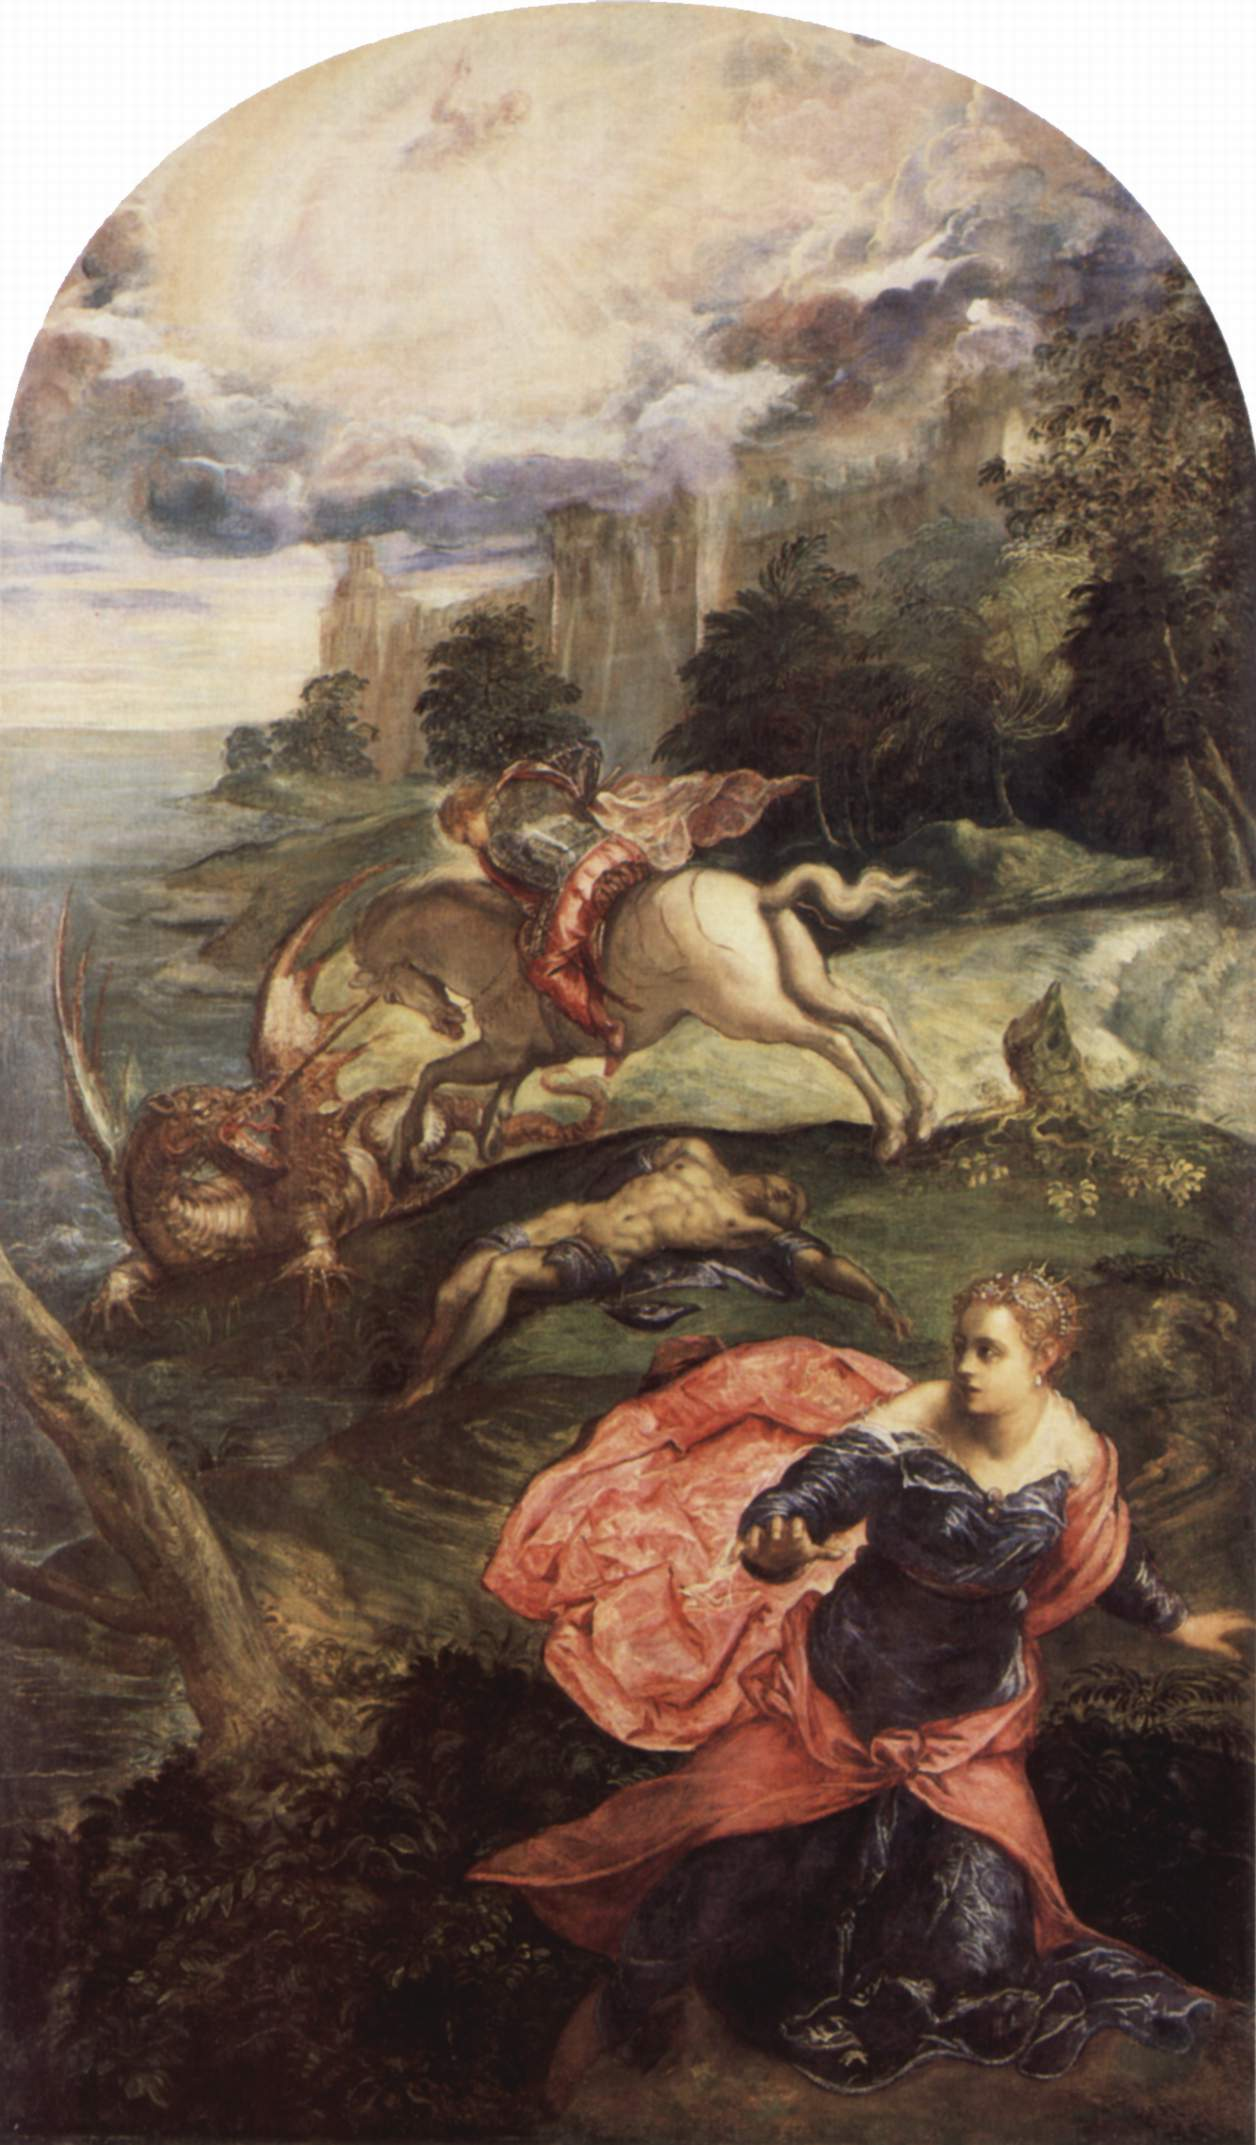 Tintoretto,  Saint George and the Dragon , 1555 - 1558, National Gallery, London.